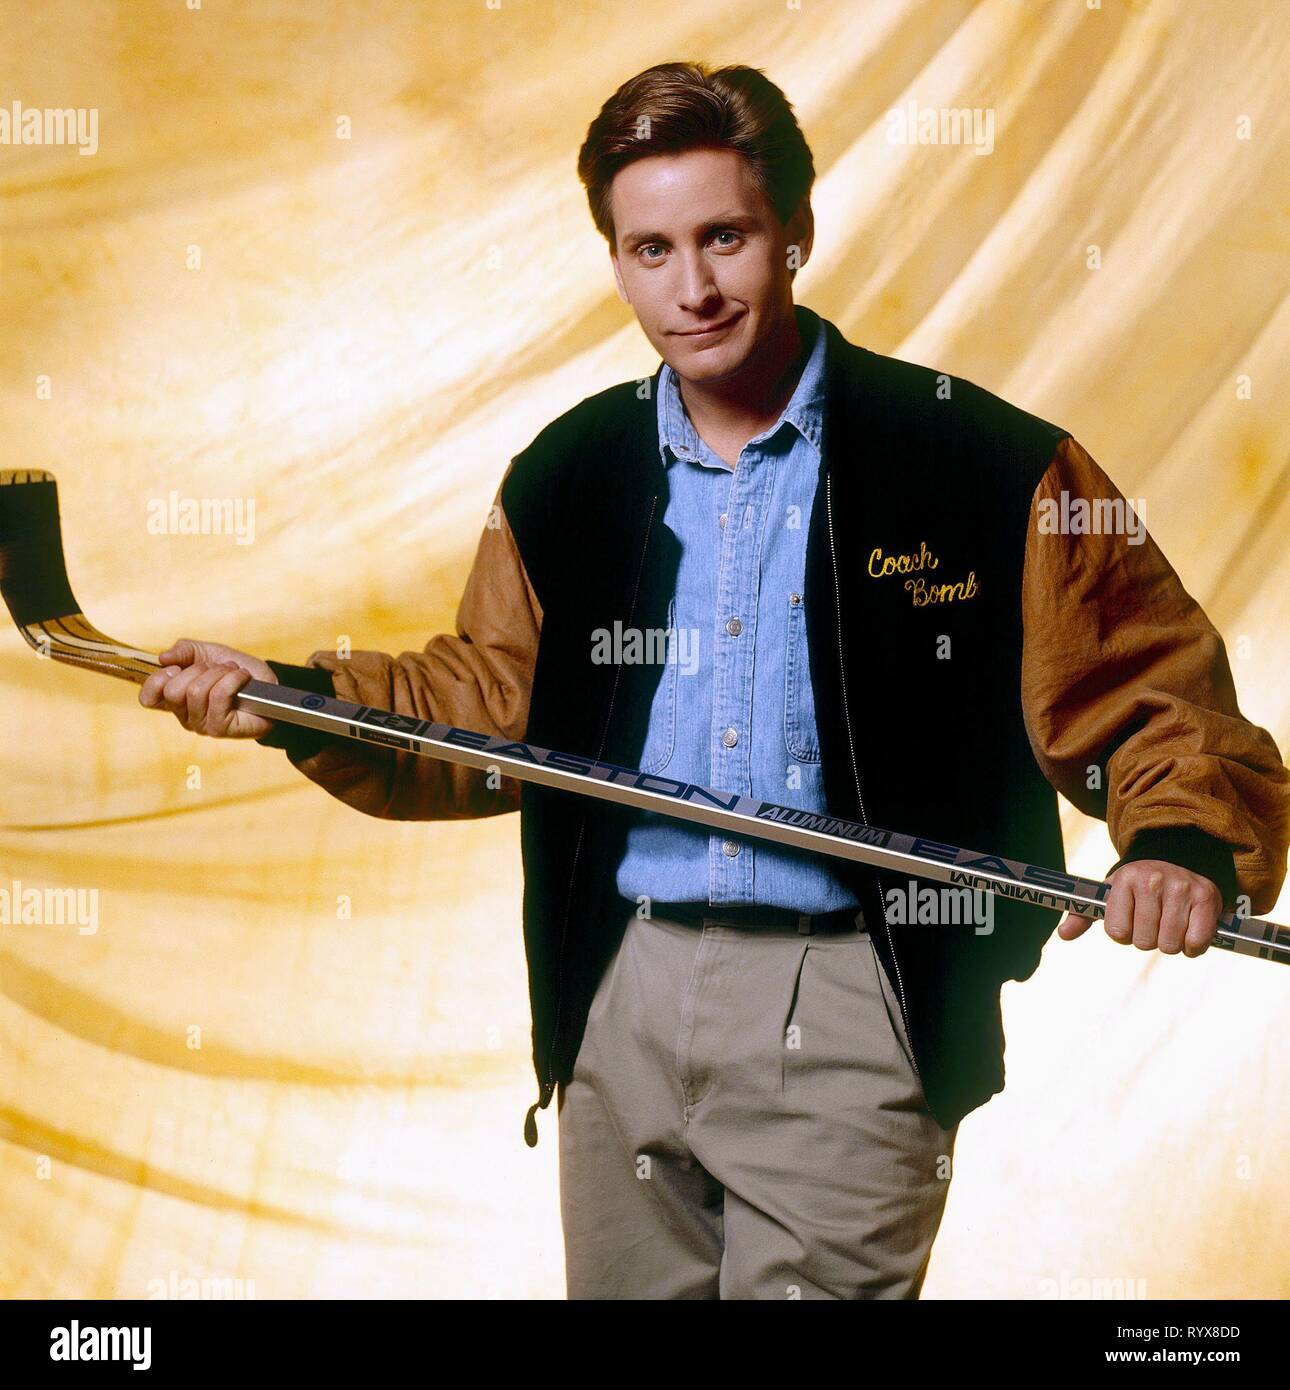 EMILIO ESTEVEZ, THE MIGHTY DUCKS, 1992 - Stock Image